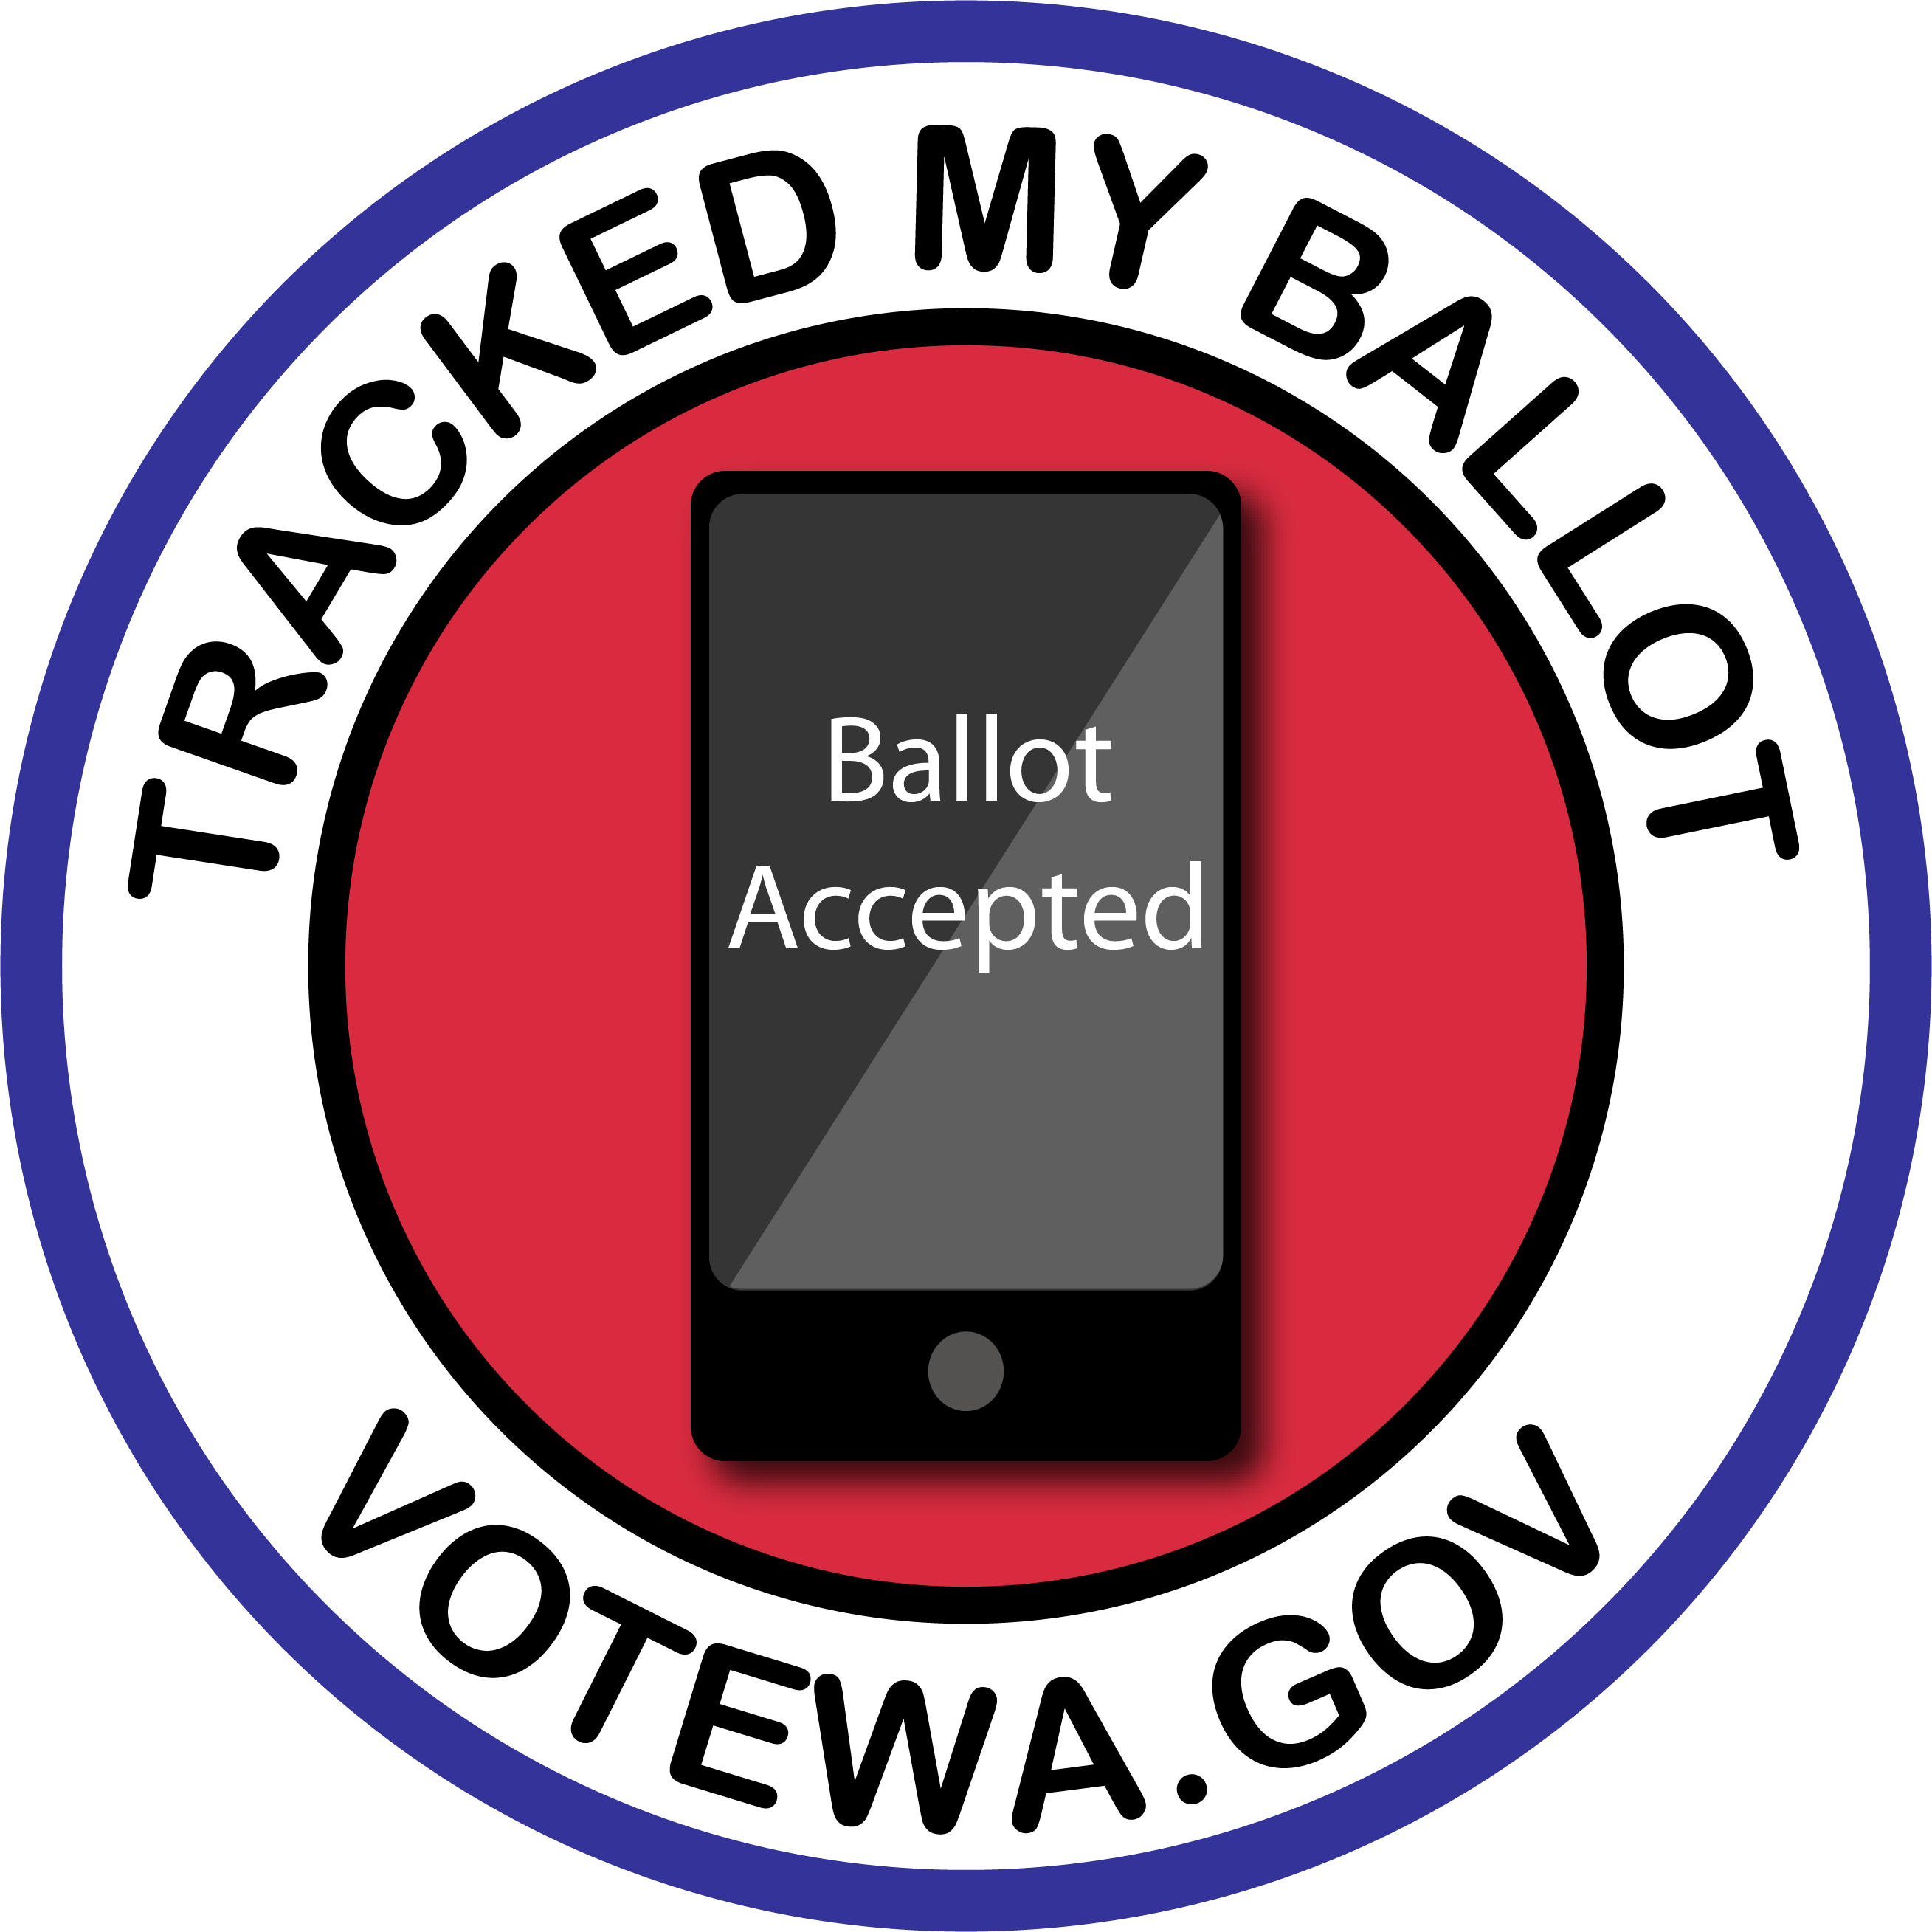 Tracked My Ballot Badge 6